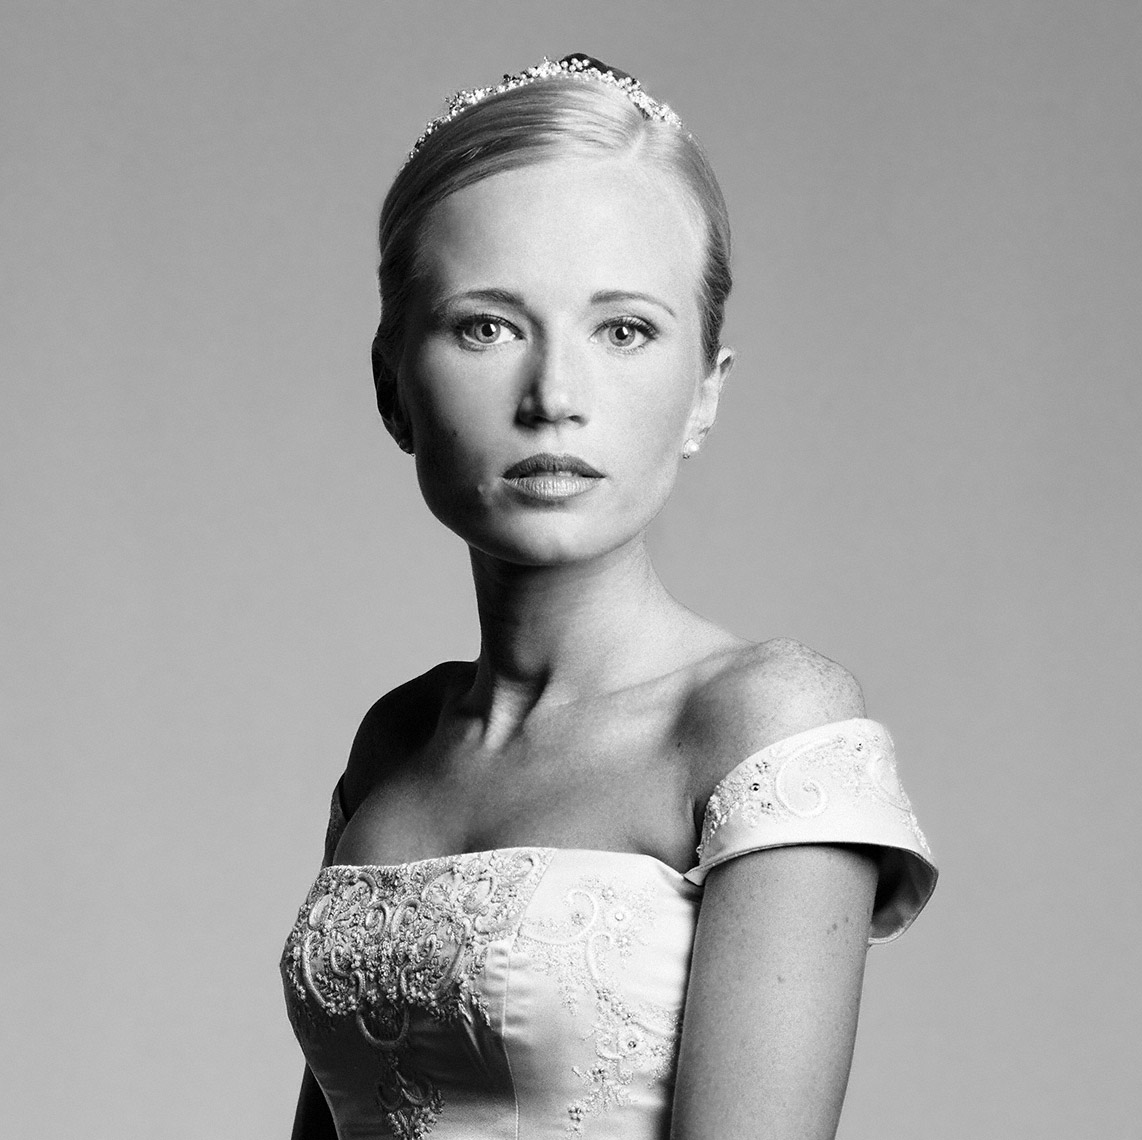 Stunning black and white bridal portrait of Ms. Coward